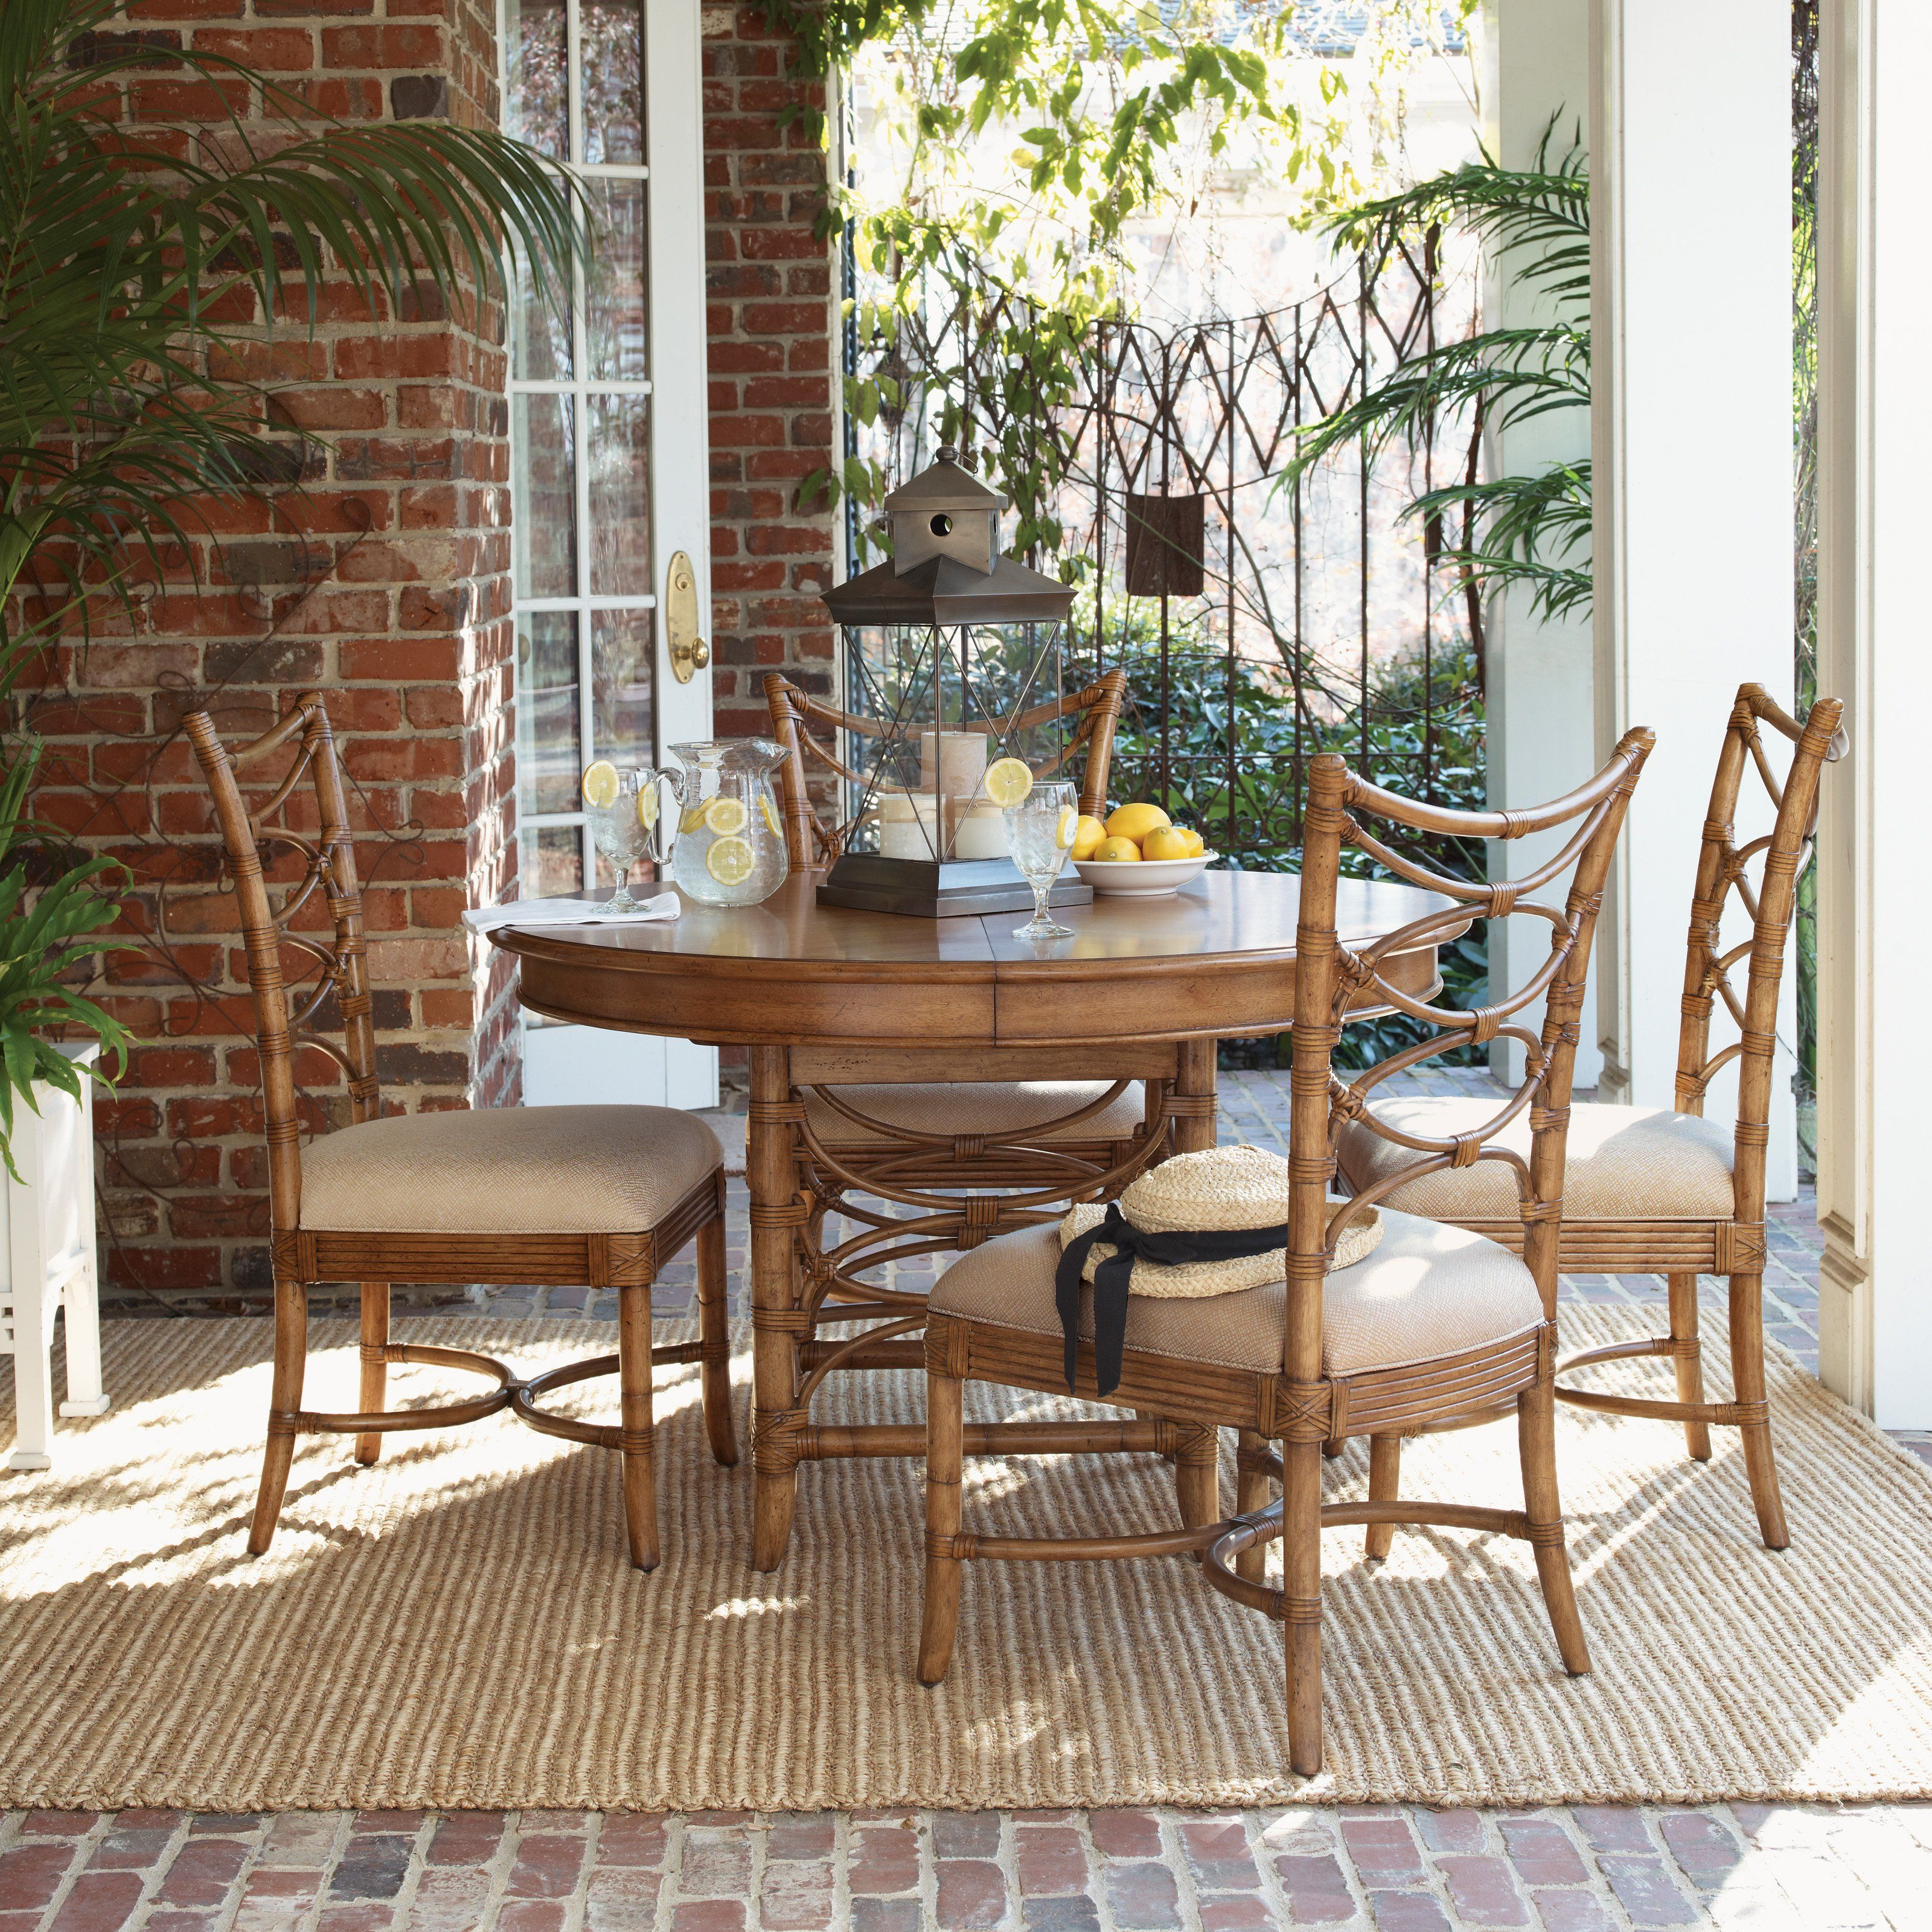 Tommy Bahama By Lexington Home Brands Beach House Coconut Grove Dining  Table | From Hayneedle.